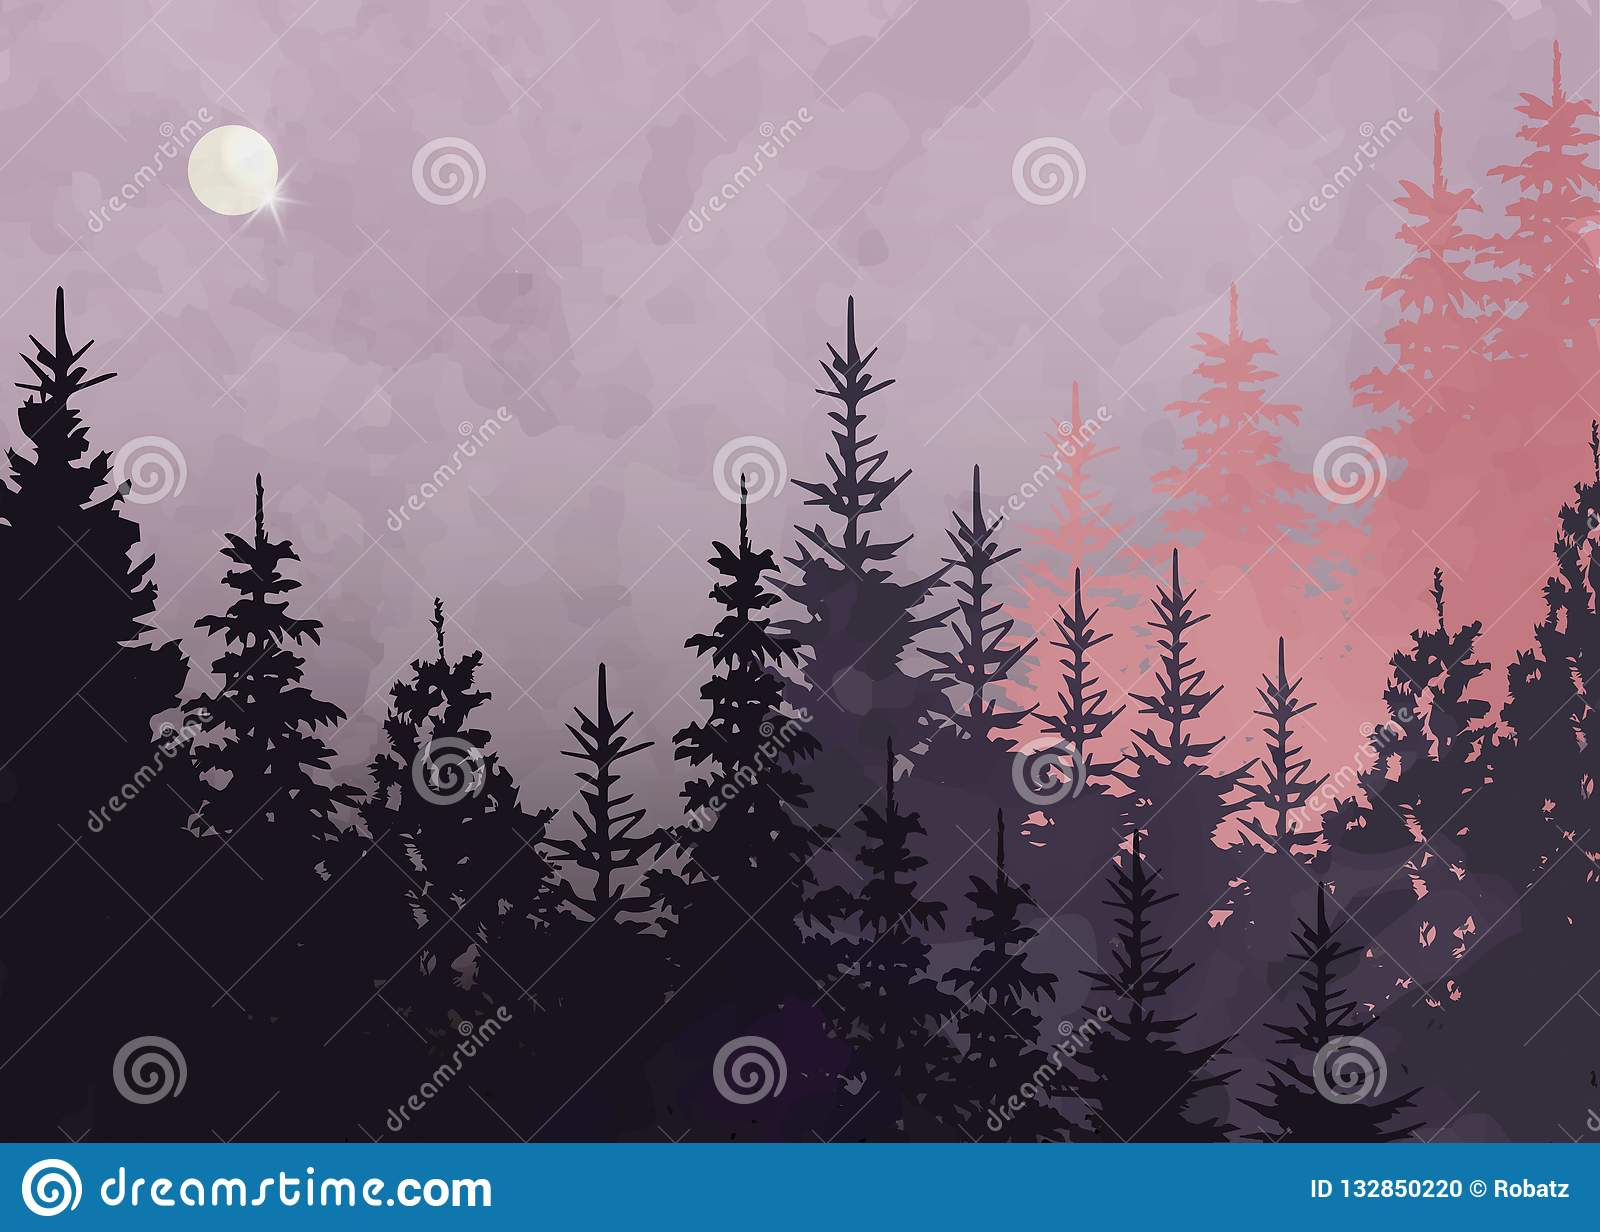 Winter forest background, vector mountain landscape. Christmas tree firs with full moon and pink sky. Watercolor Painting style.